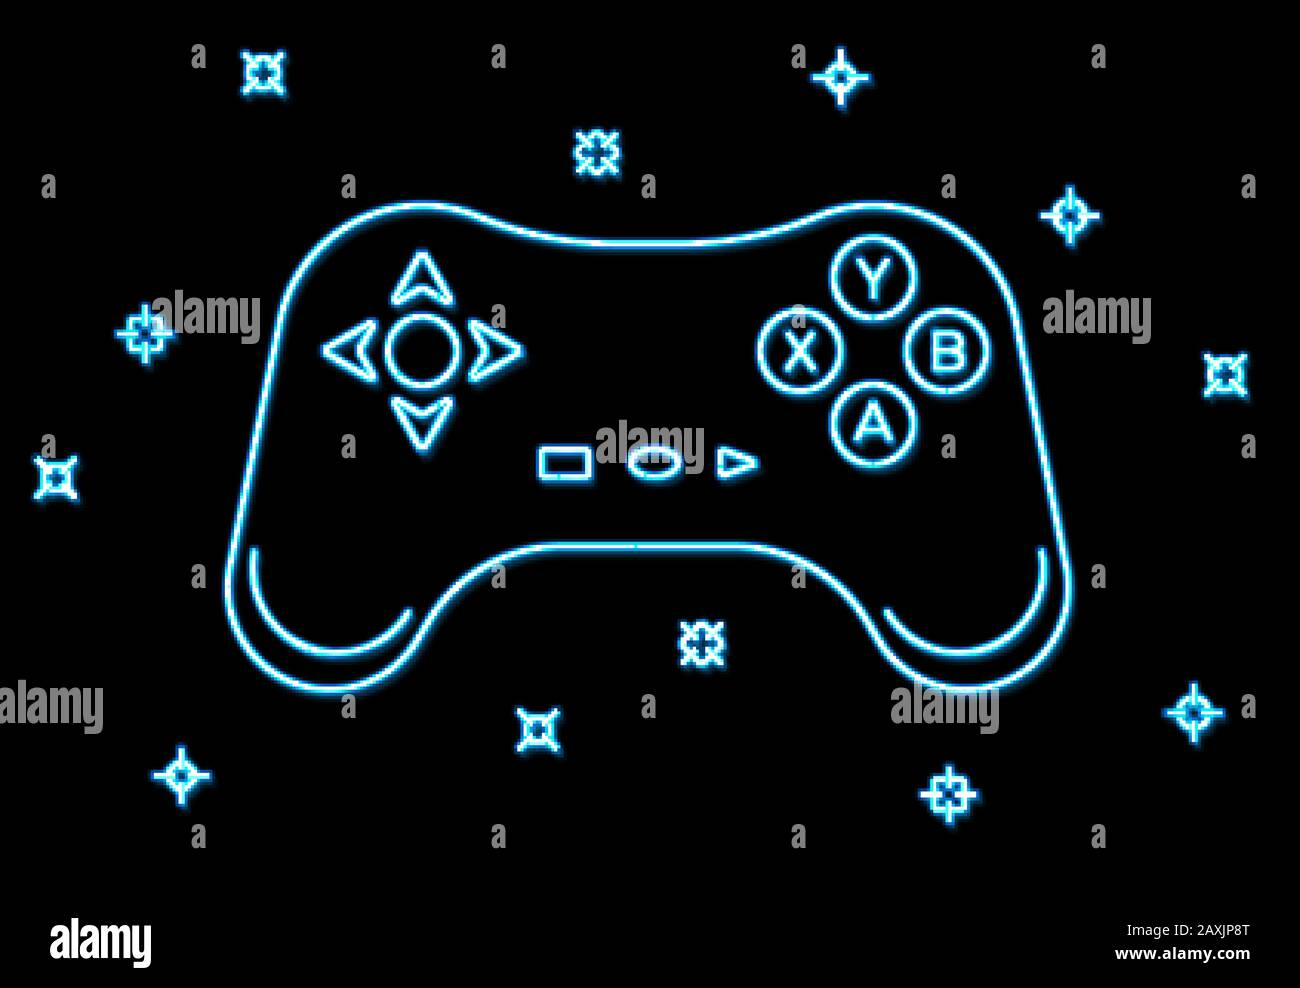 Neon Game Sign On Black Background Blue Light Arrow Cursor Icon Retro Night 80s Neon Gaming Style Controller Keys With Direction Cross On And Off B Stock Vector Image Art